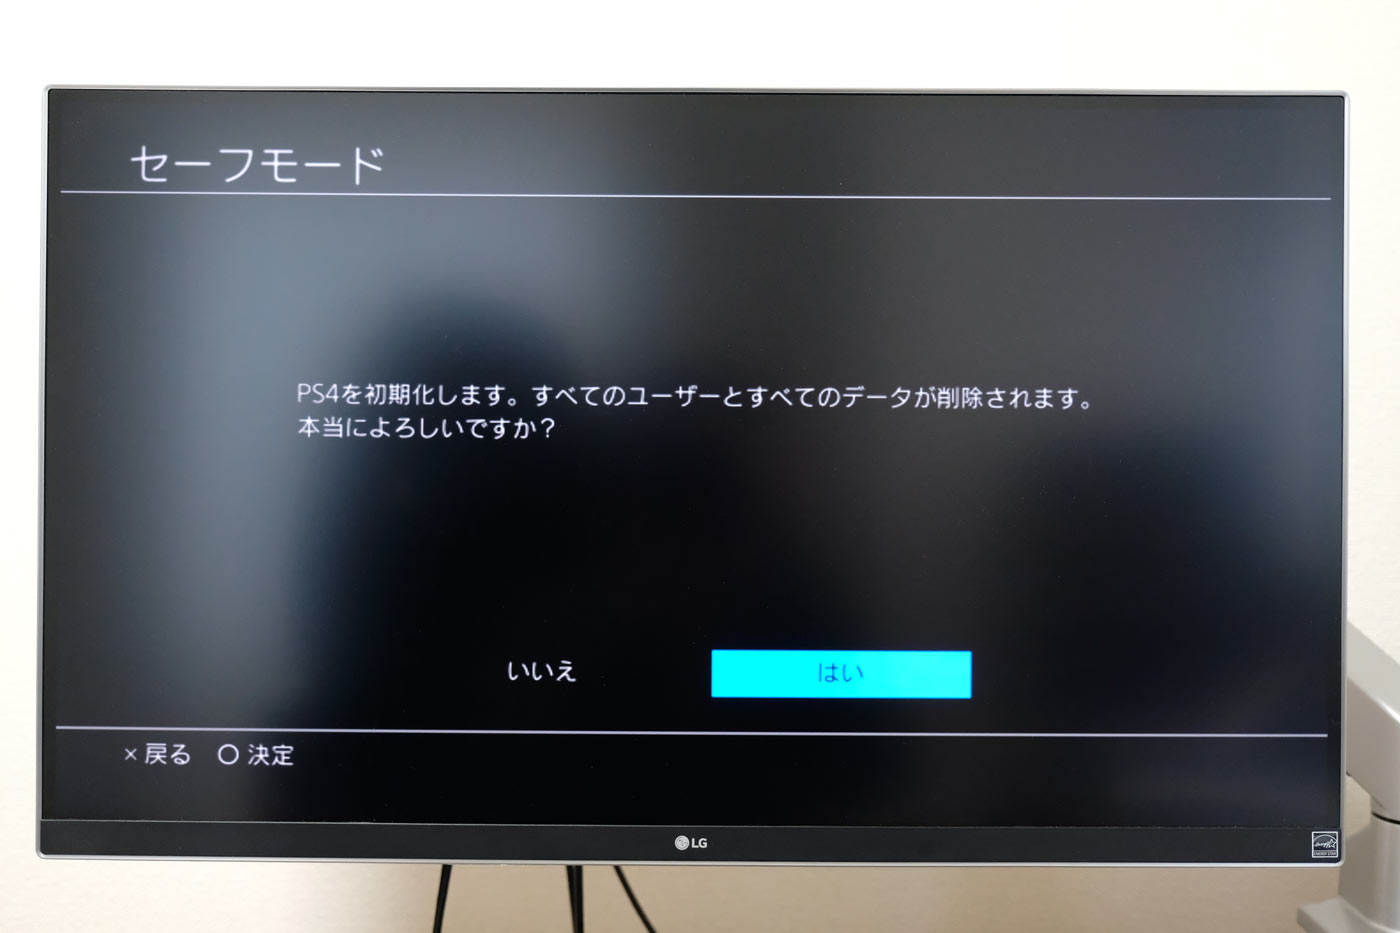 PS4を再インストール